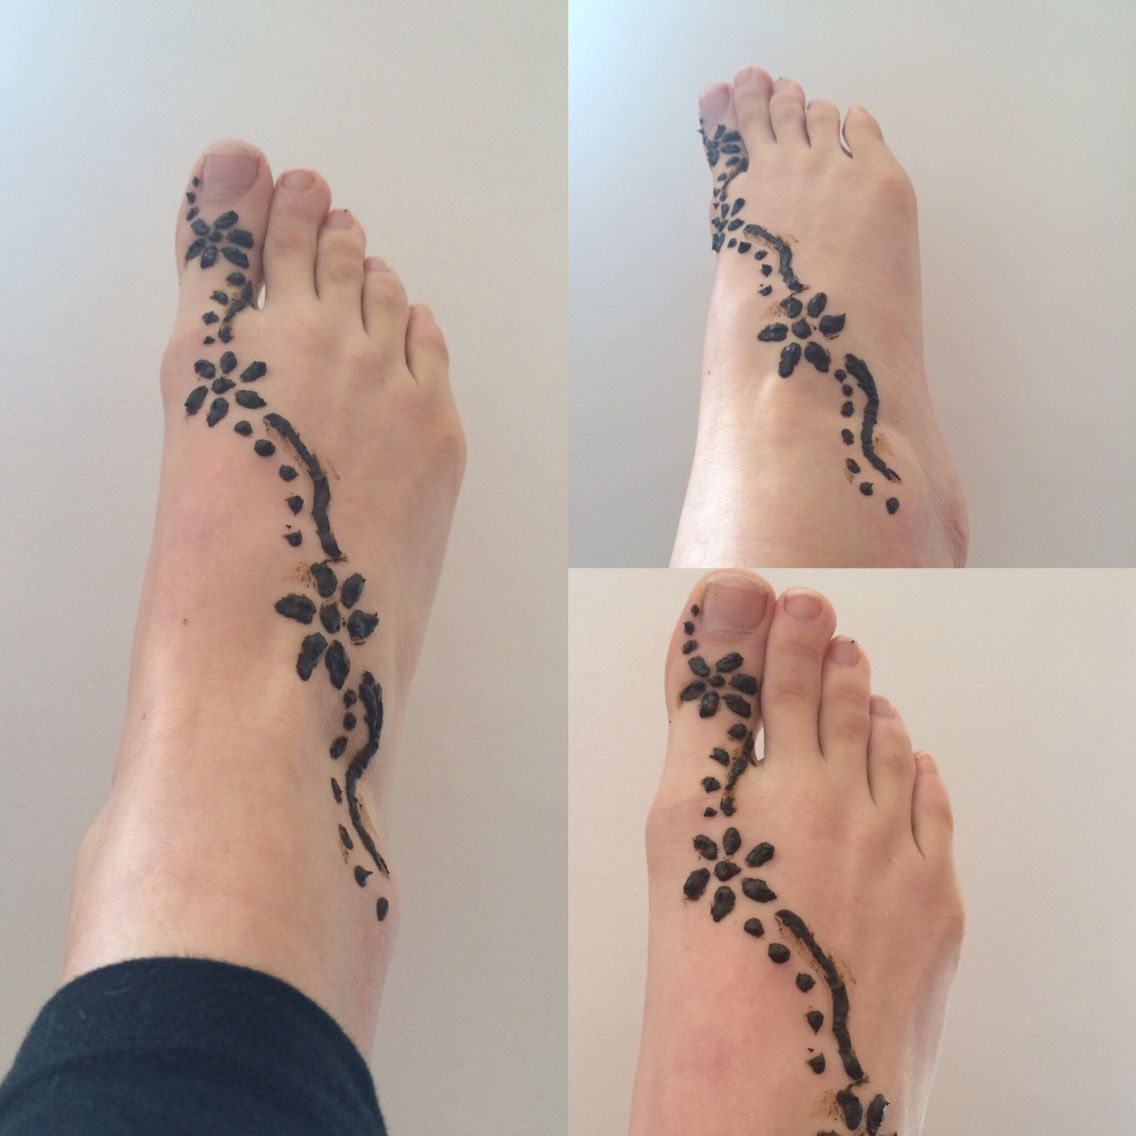 Simple Henna Tattoo Henna Tattoo: EASY Henna Design For Beginners! Takes 10-15 Mins